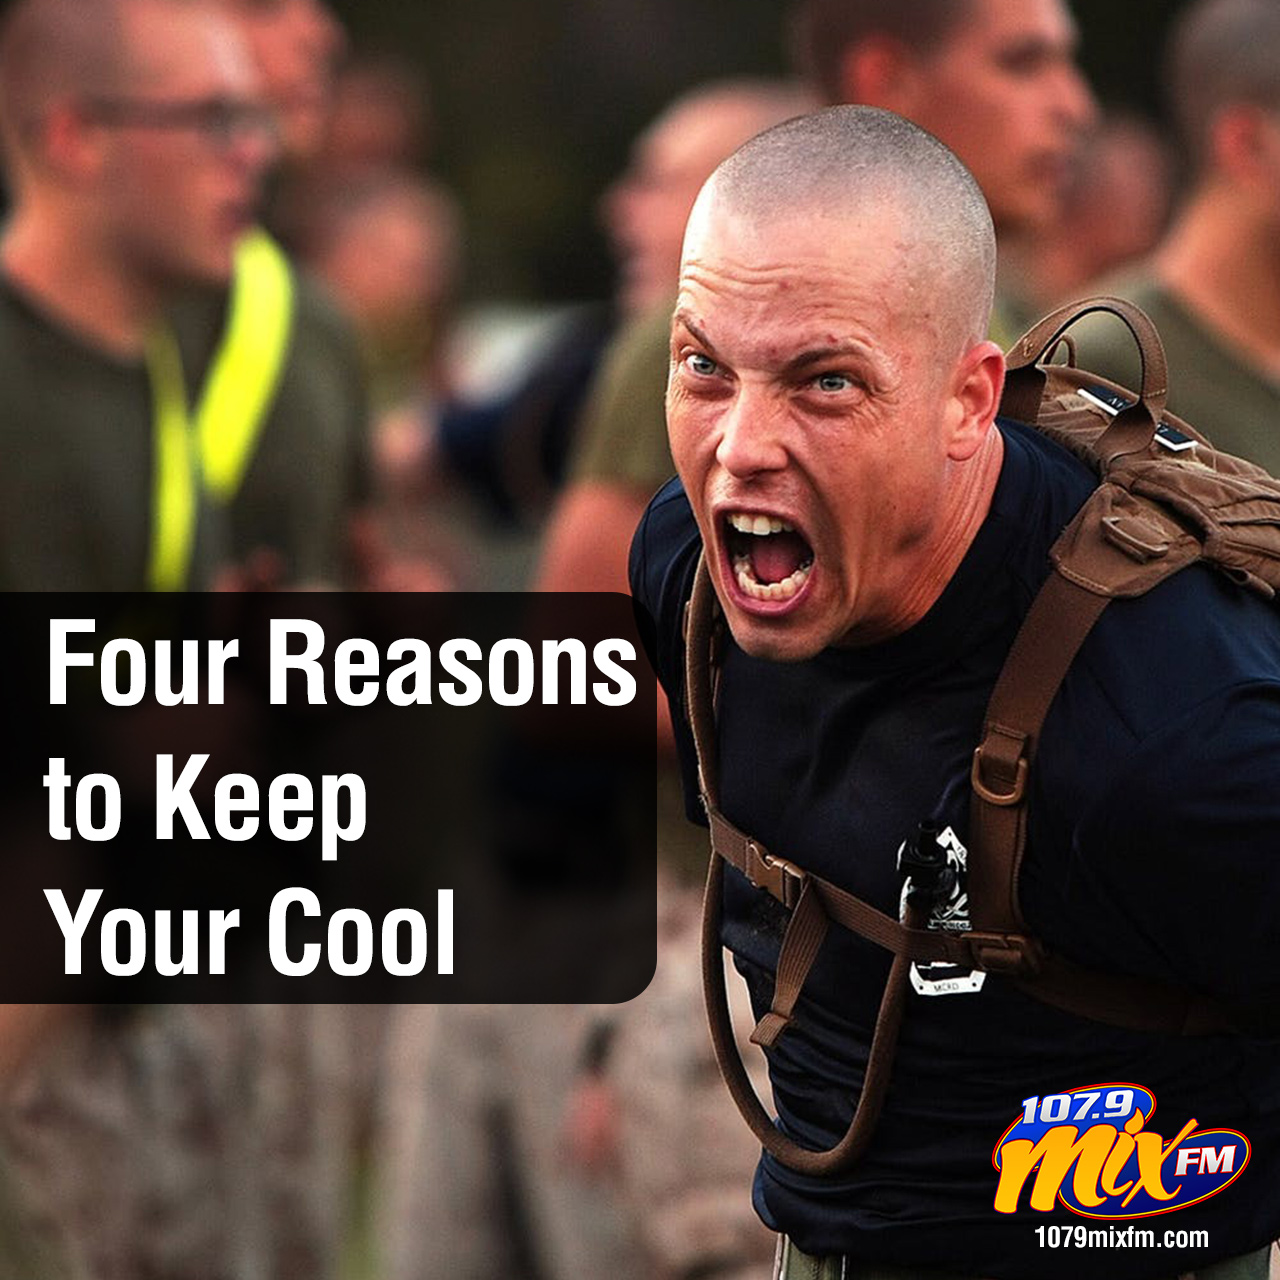 Four Reasons to Keep Your Cool